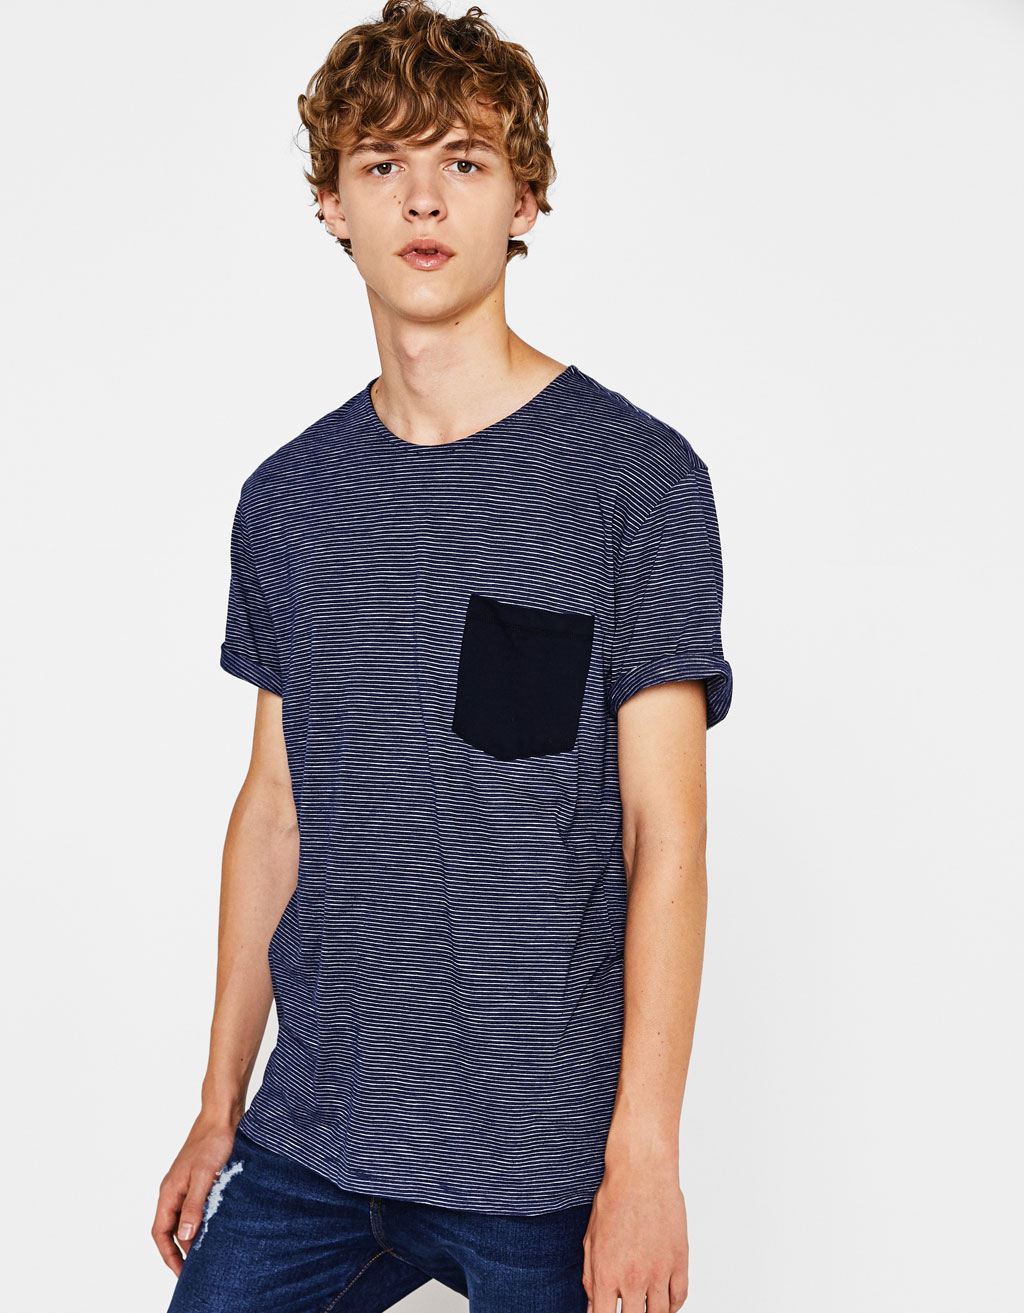 Thin-stripe T-shirt with a pocket